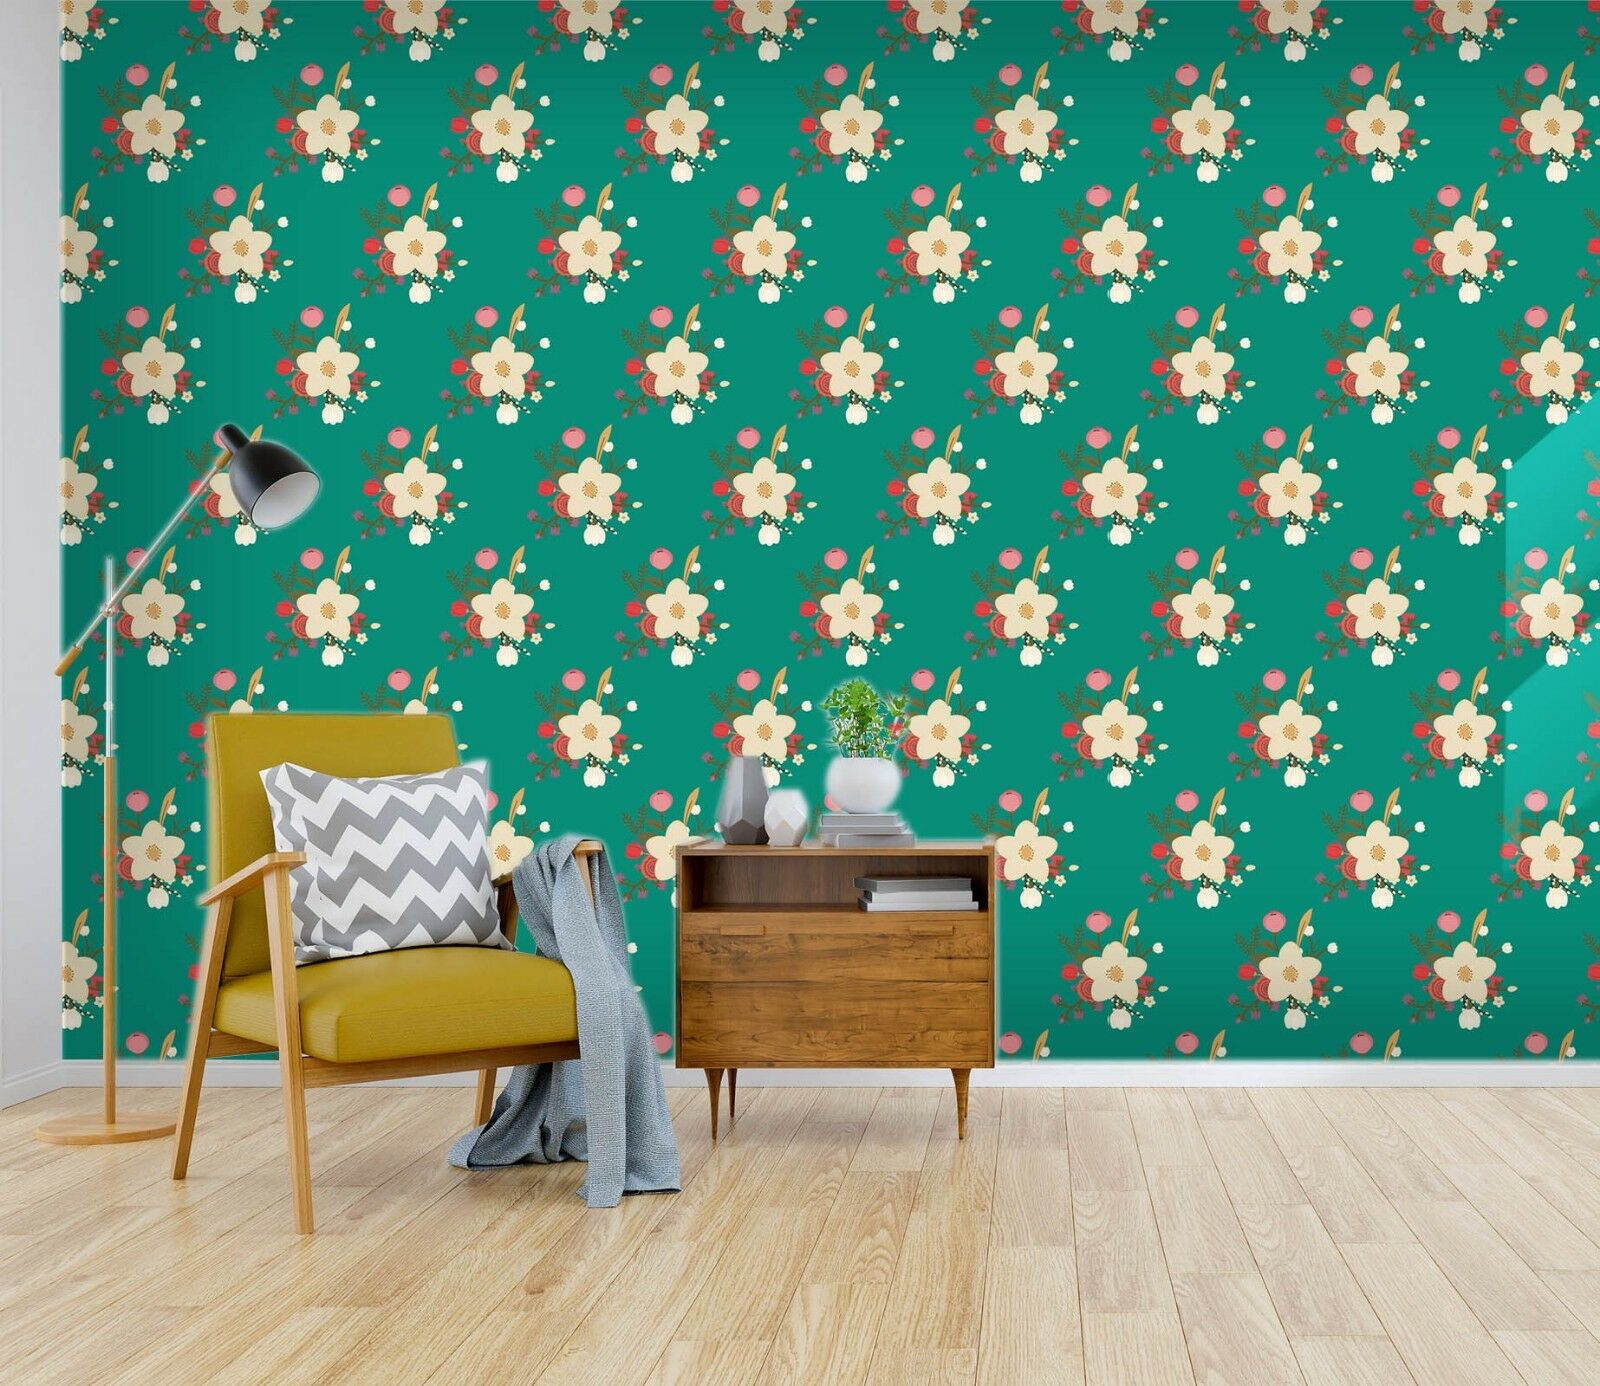 3D Traditional Flower 86 Wall Paper Exclusive MXY Wallpaper Mural Decal Indoor